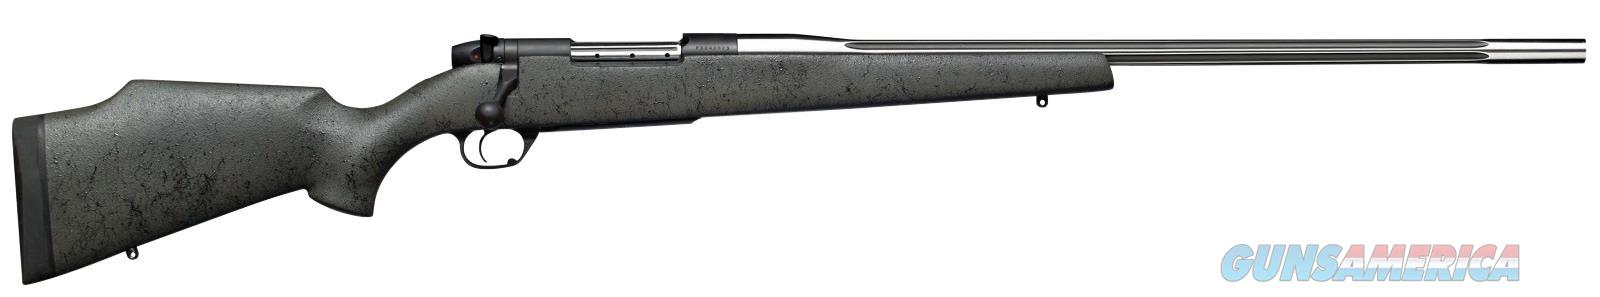 WEATHERBY MARK V 6.5-300WBY GRY BLK WEB SS FLUTED #3 MARM653WR6O  Guns > Rifles > Weatherby Rifles > Sporting